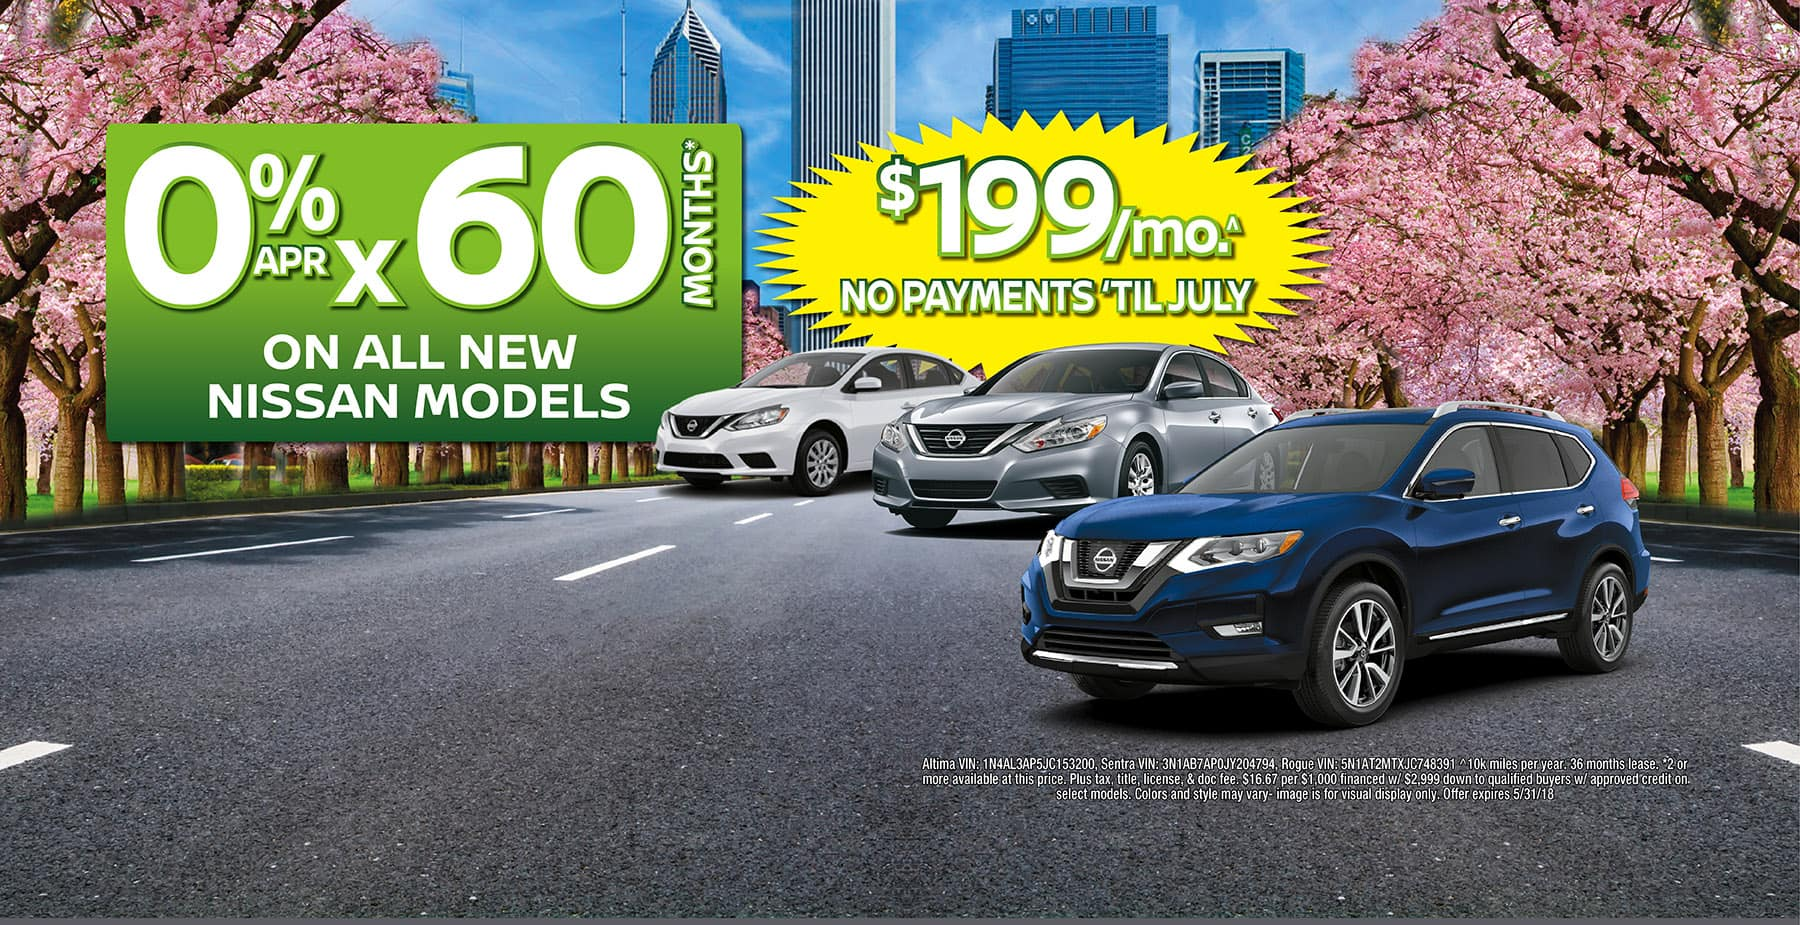 0% APR for 60 Months on All New Nissan Models at Star Nissan!